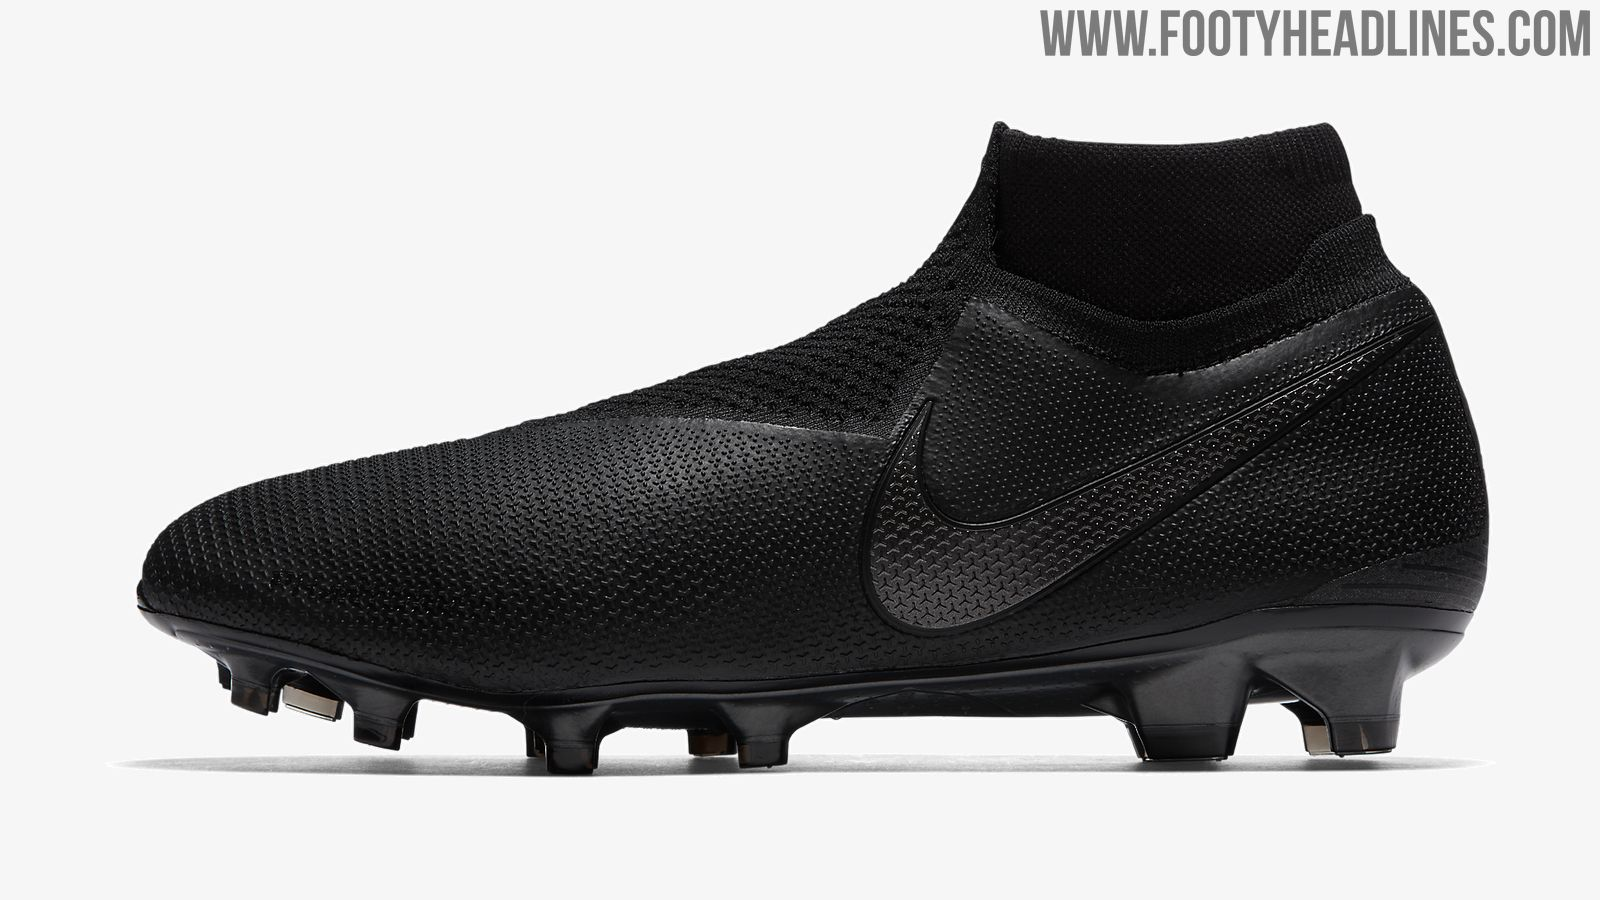 92ae66915 Nike released a completely blackout Nike Phantom Vision football boot as  part of the Nike 2018-19 Black Ops Black Pack.